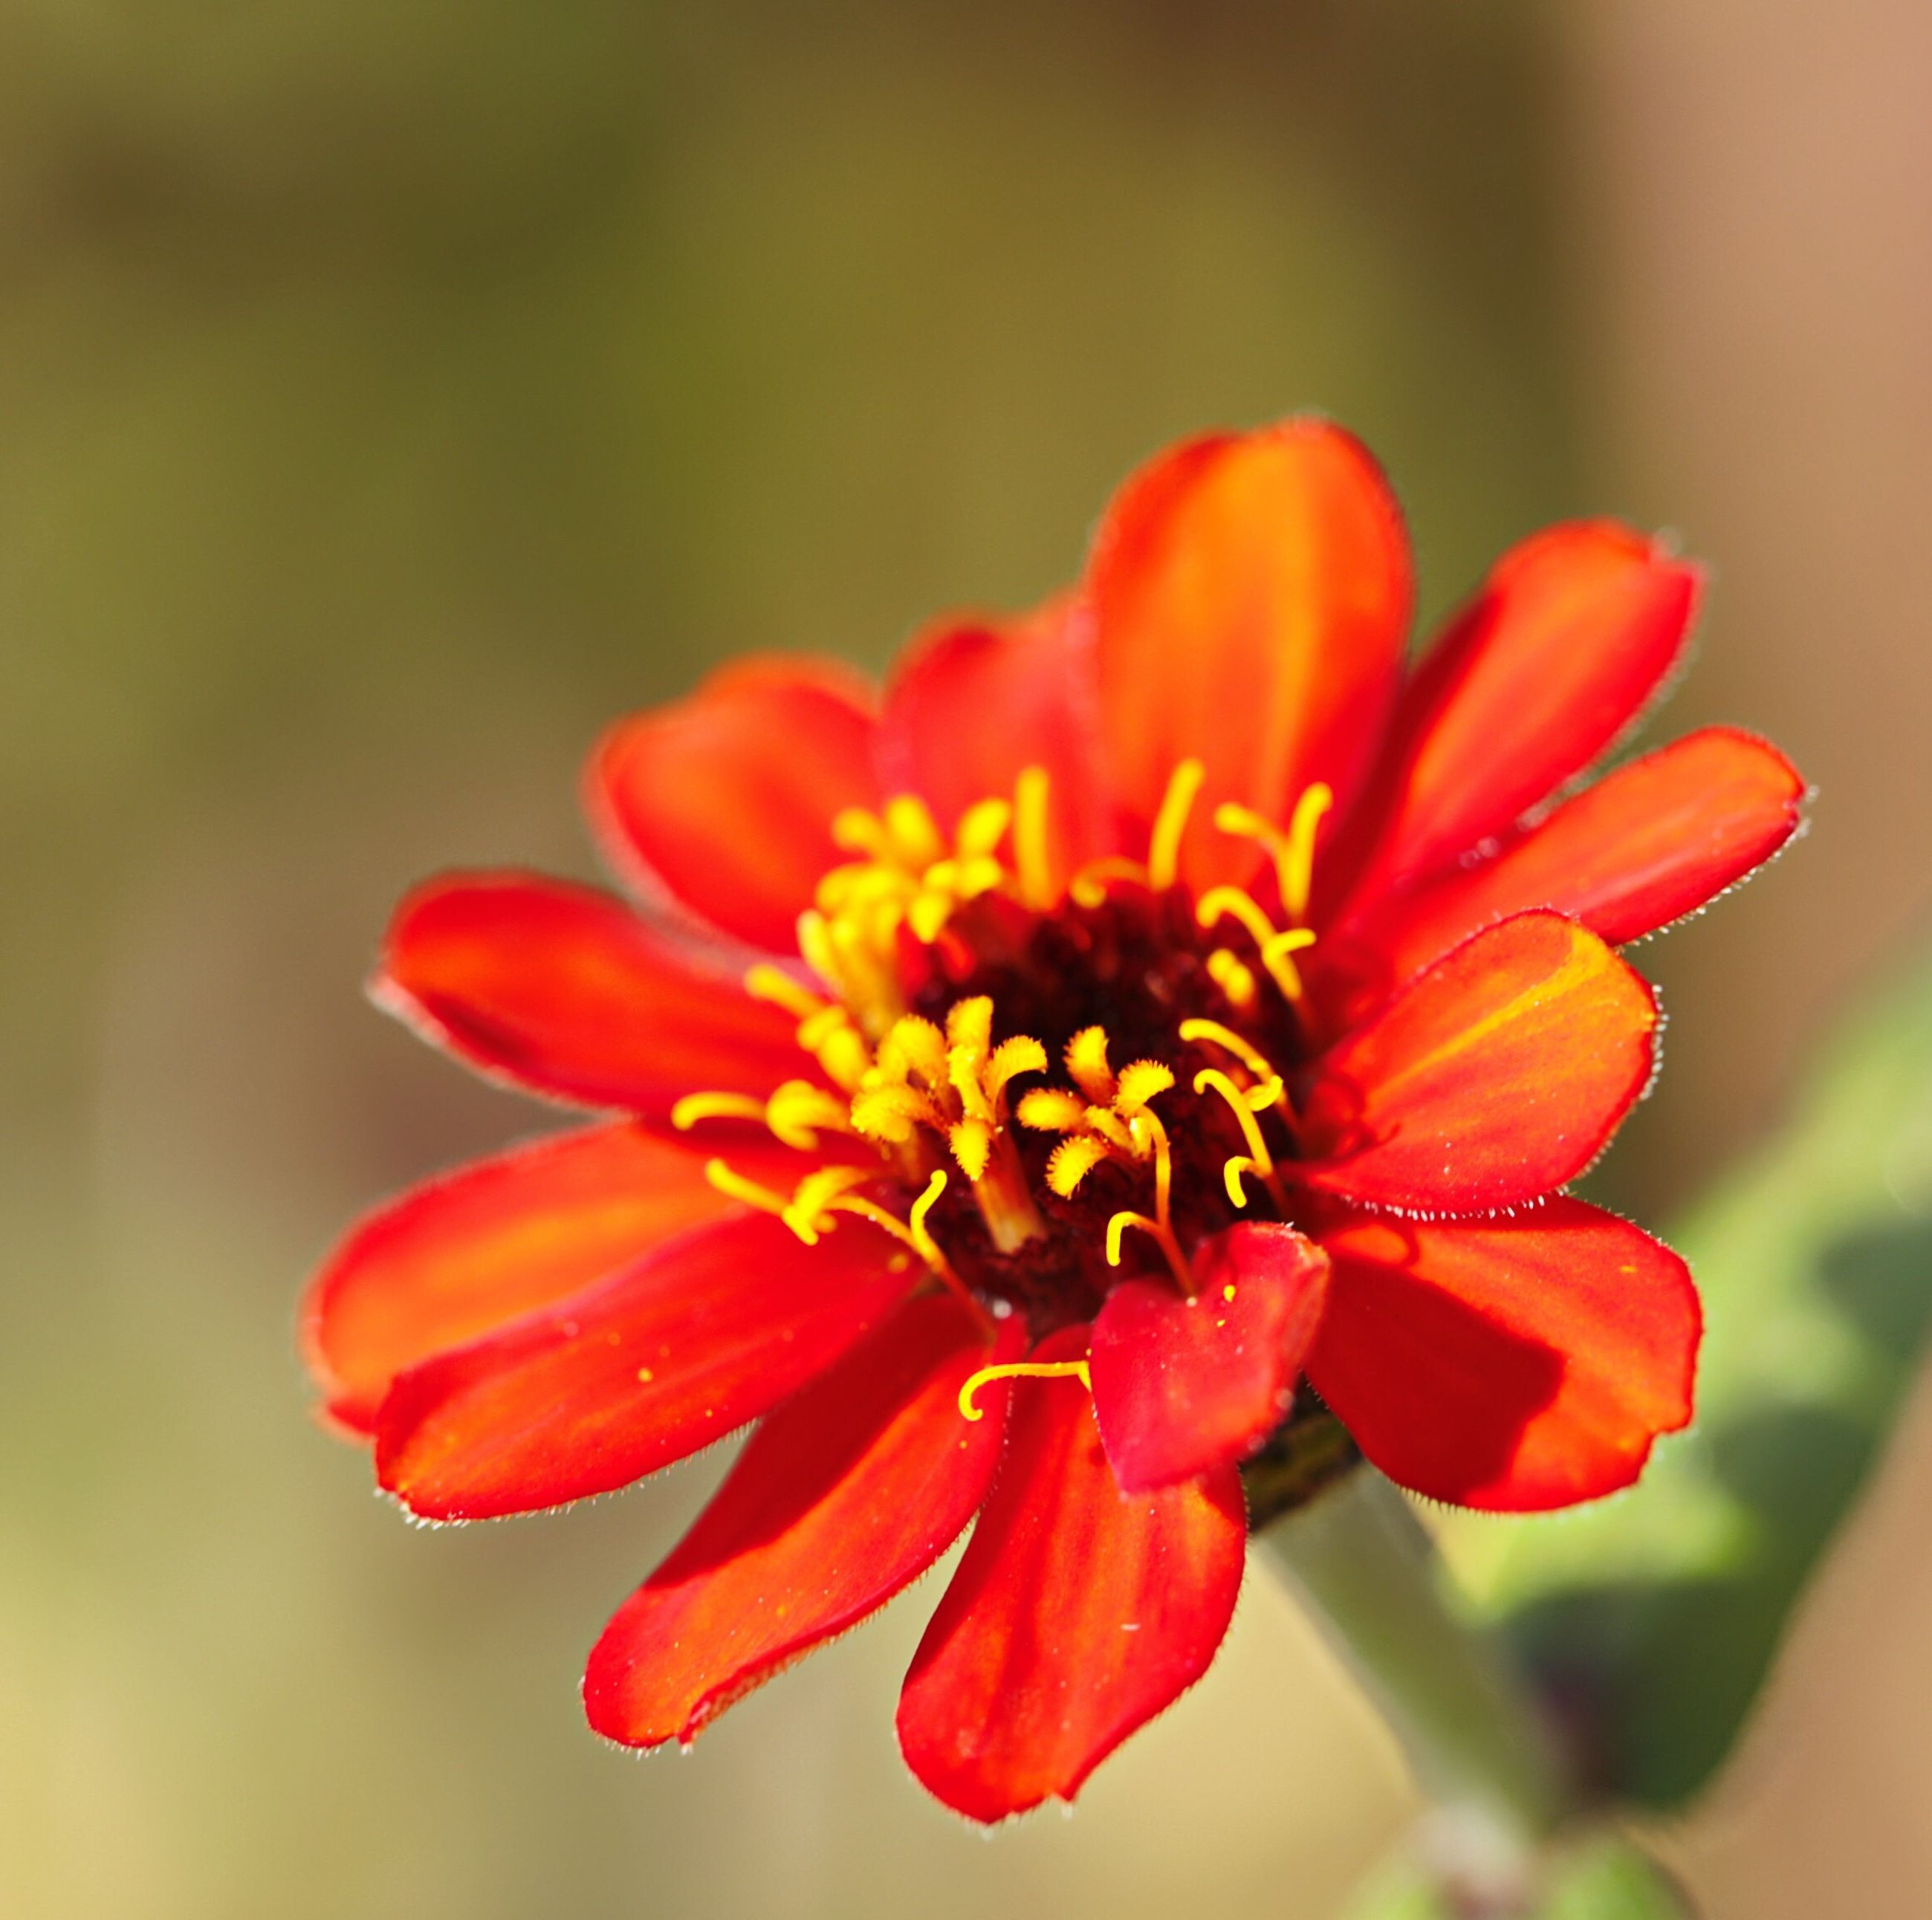 flower, petal, beauty in nature, flower head, nature, freshness, growth, fragility, plant, red, focus on foreground, blooming, pollen, close-up, zinnia, outdoors, no people, day